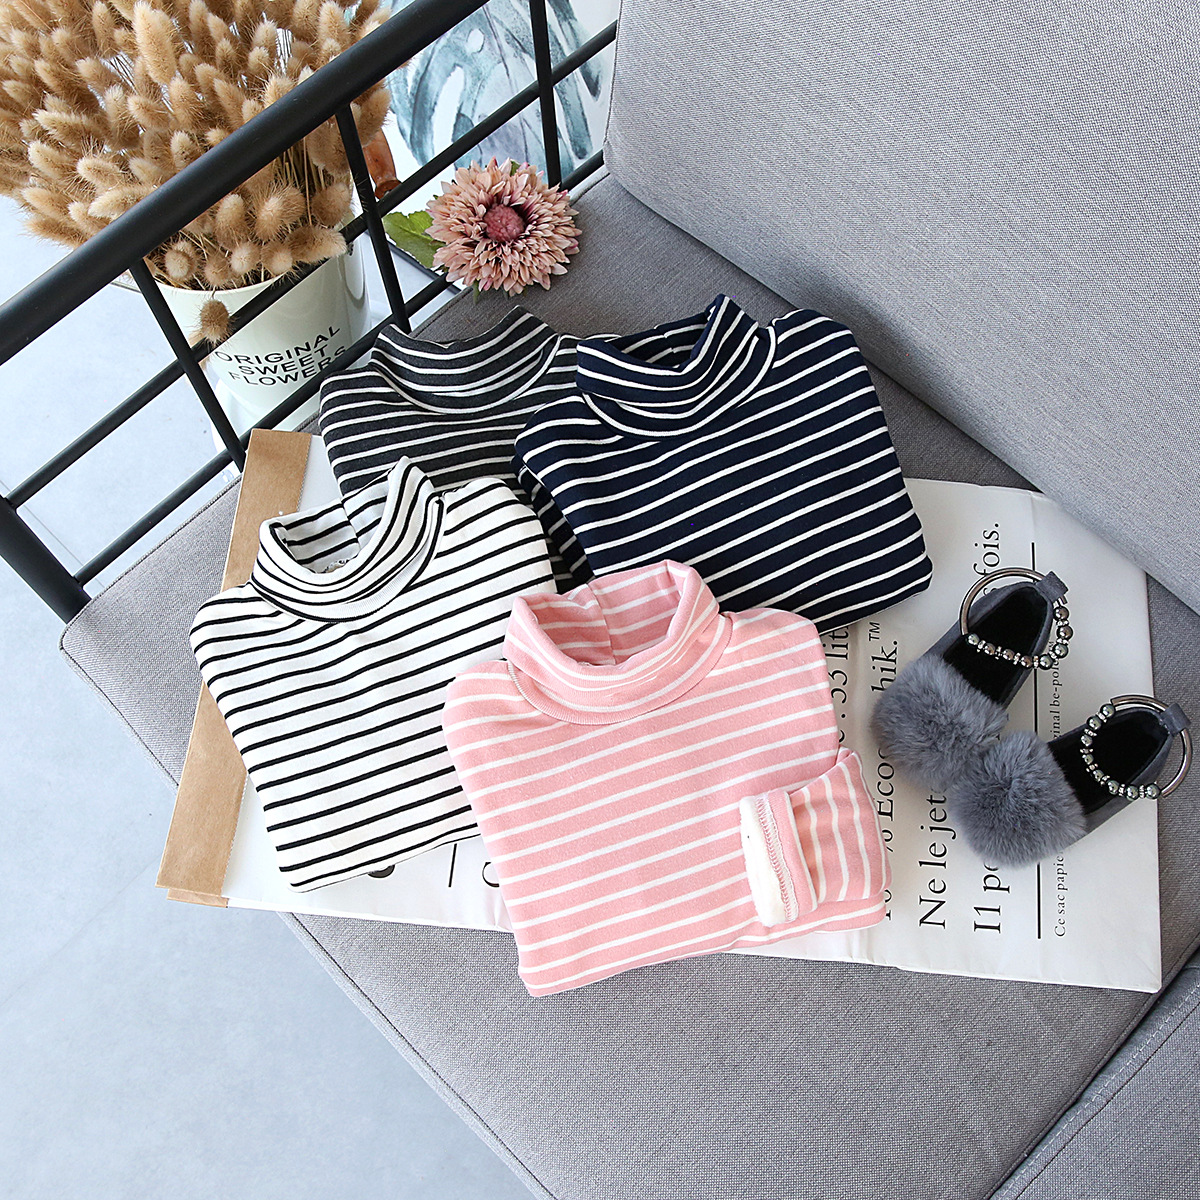 New 2018 Winter Girls Turtleneck Plus Velvet Thick Warm Striped T-Shirt Kids Baby Autumn Slim Fleece Undershirts Wholesale Tees цена